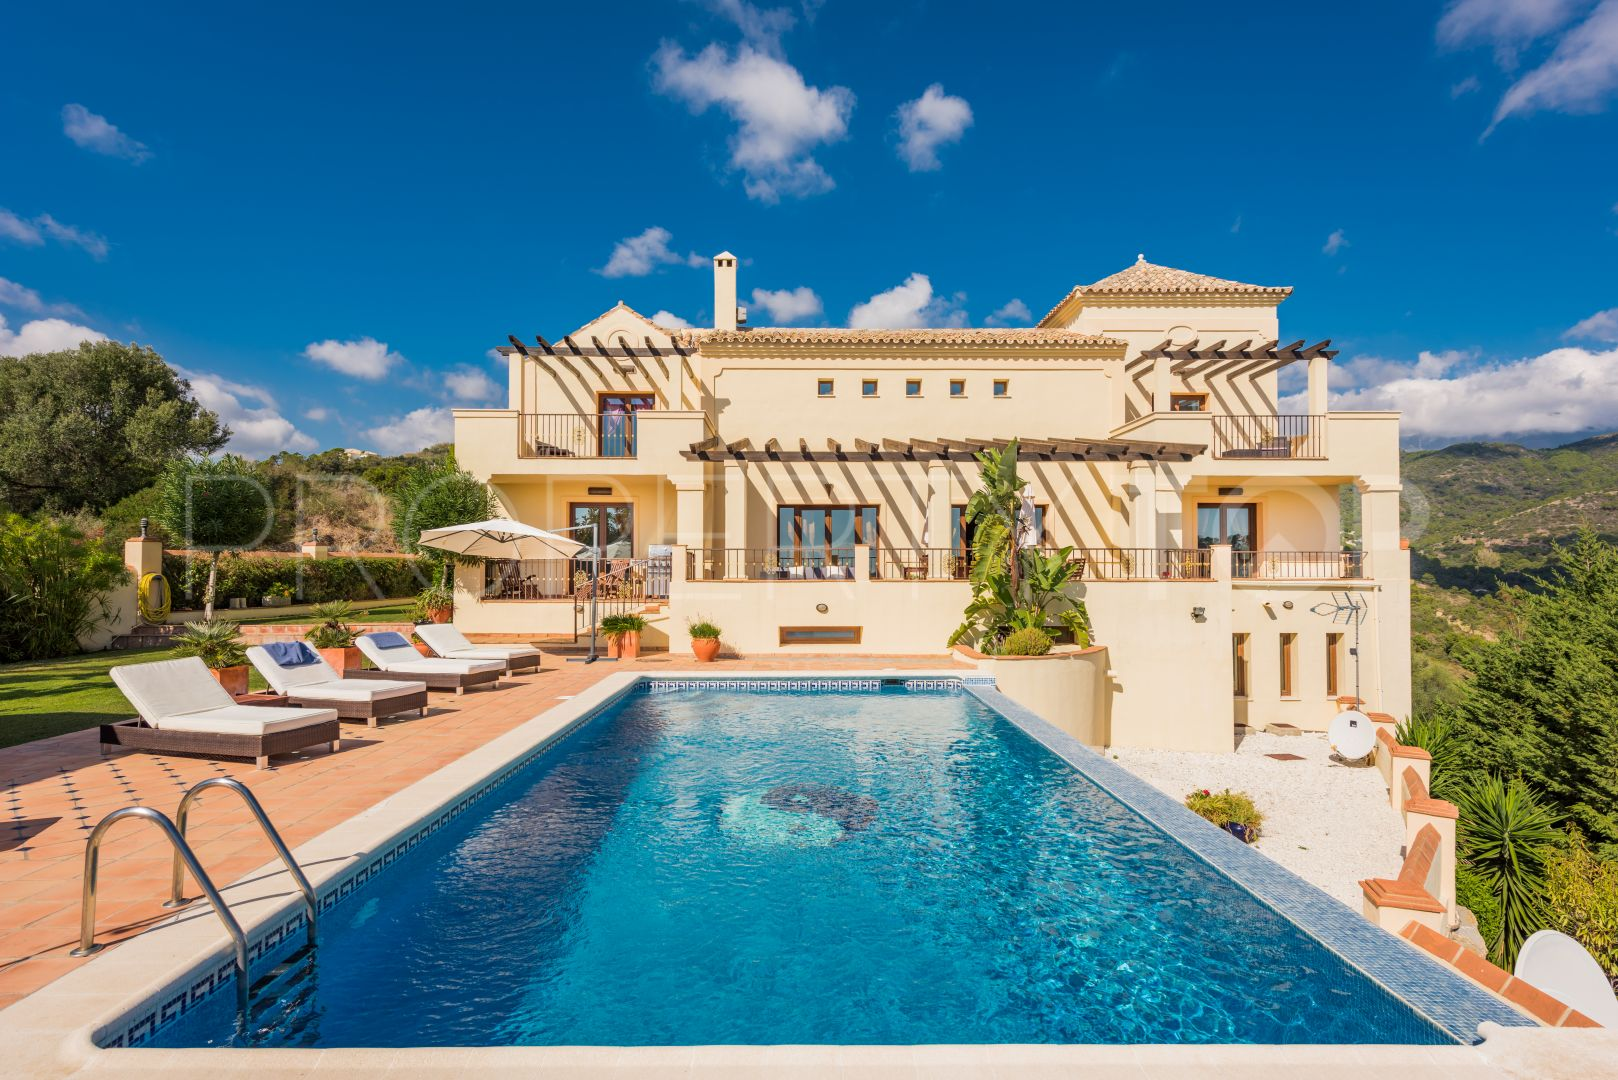 Gfk Pool Sale 6 Bedrooms Monte Mayor Villa For Sale Value Added Property